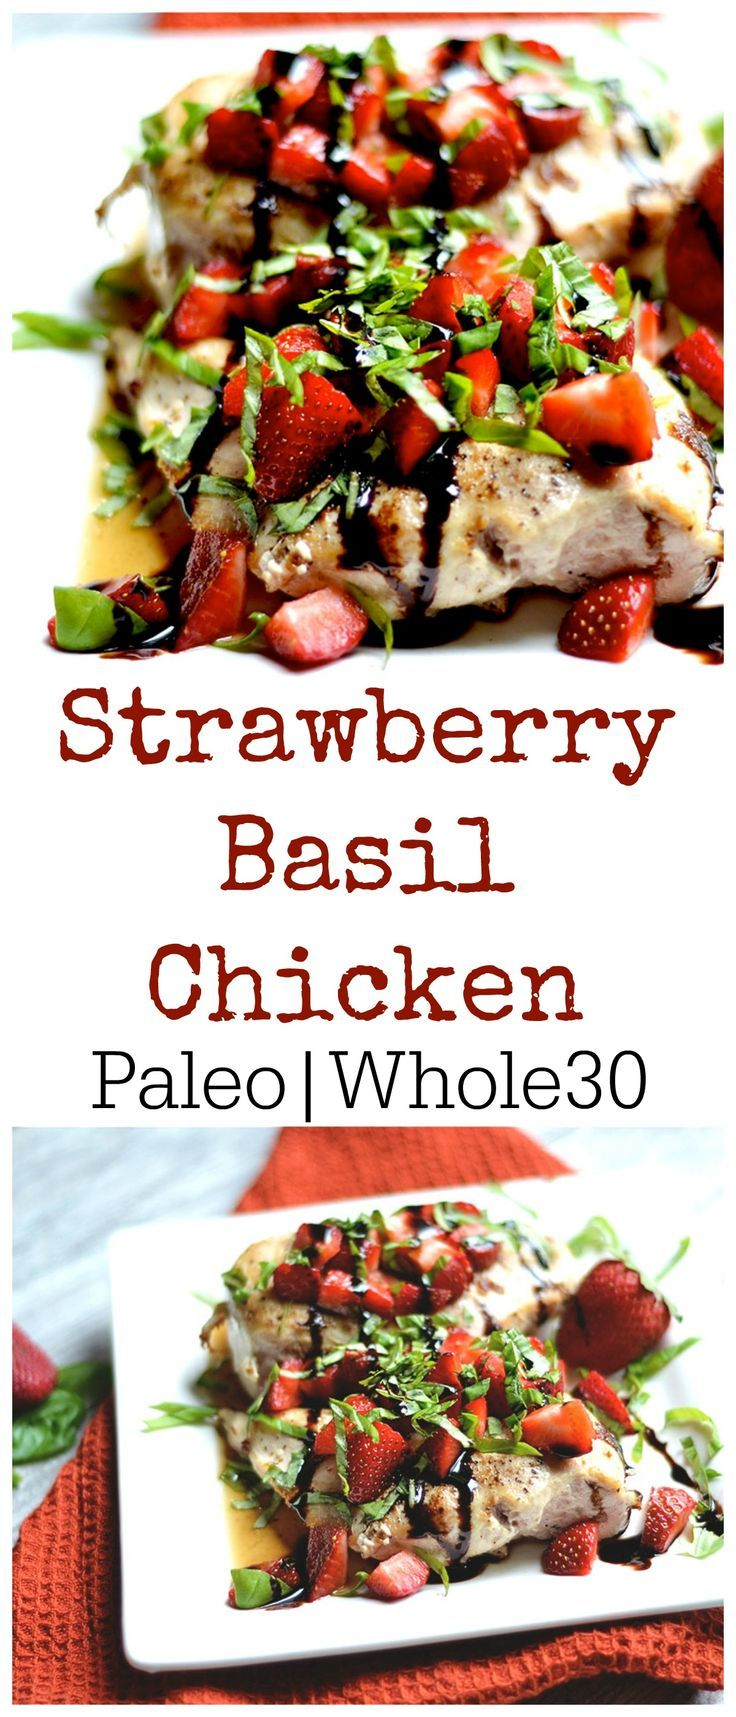 Couple additions: adding a little balsamic and honey just as the chicken was about done cooking. Served it as a salad over spinach and added some chopped onion.  It was a big hit! -MN Fresh strawberries, basil, and balsamic flavoring this delicious meal. Super simple & healthy 15 minute dinner! Paleo, Whole30, & GF.